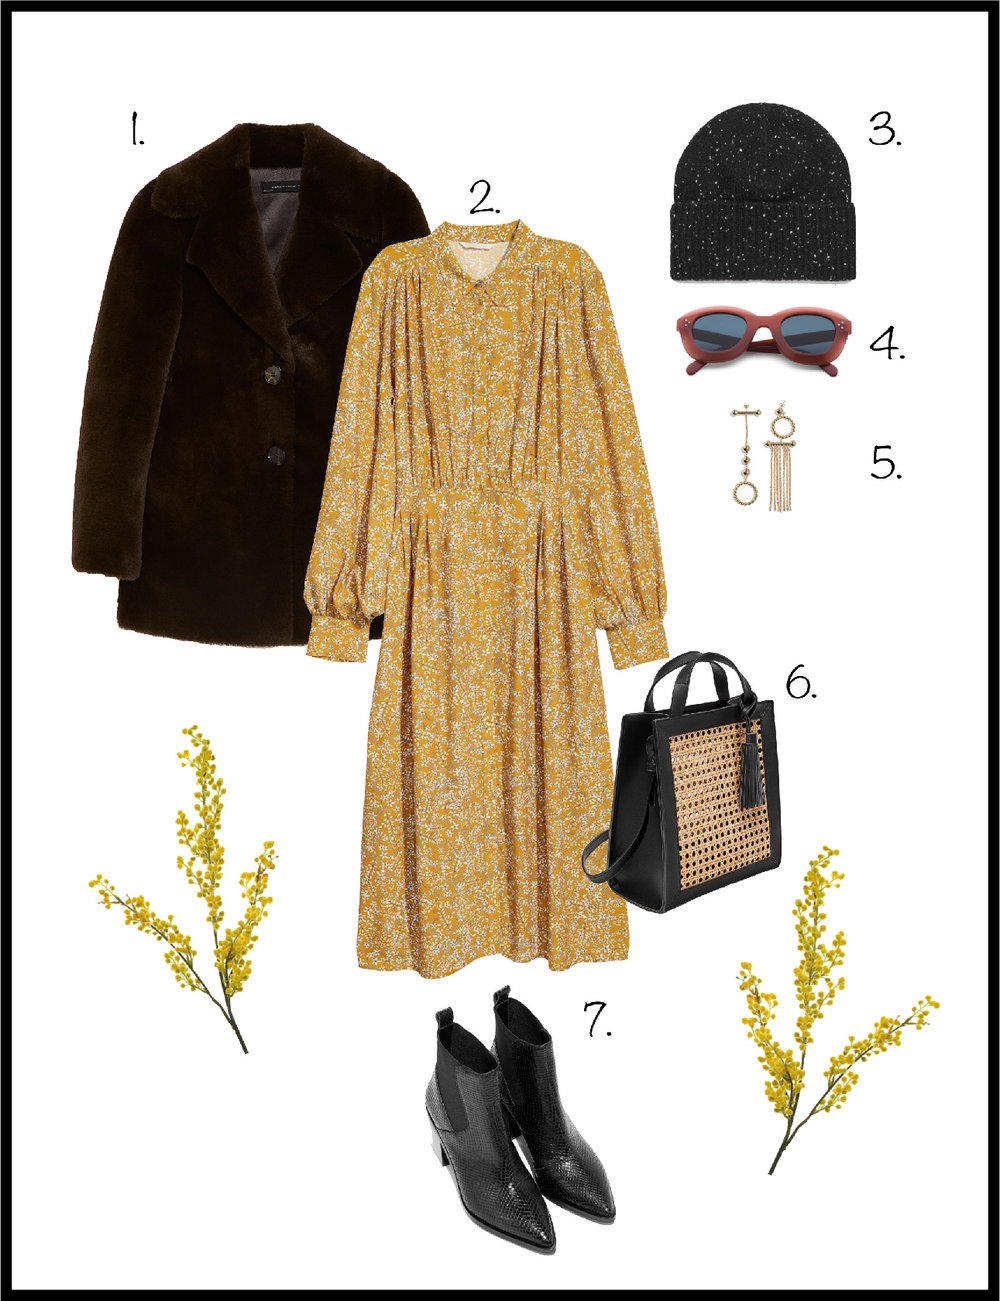 1. Coat: Zara, 2. Dress:  H&M , 3. Hat:  Cos , 4. Sunglasses:  Celine , 5. Earrings:  & Other Stories , 6. Bag:  Mango , 7. Boots:  & Other Stories